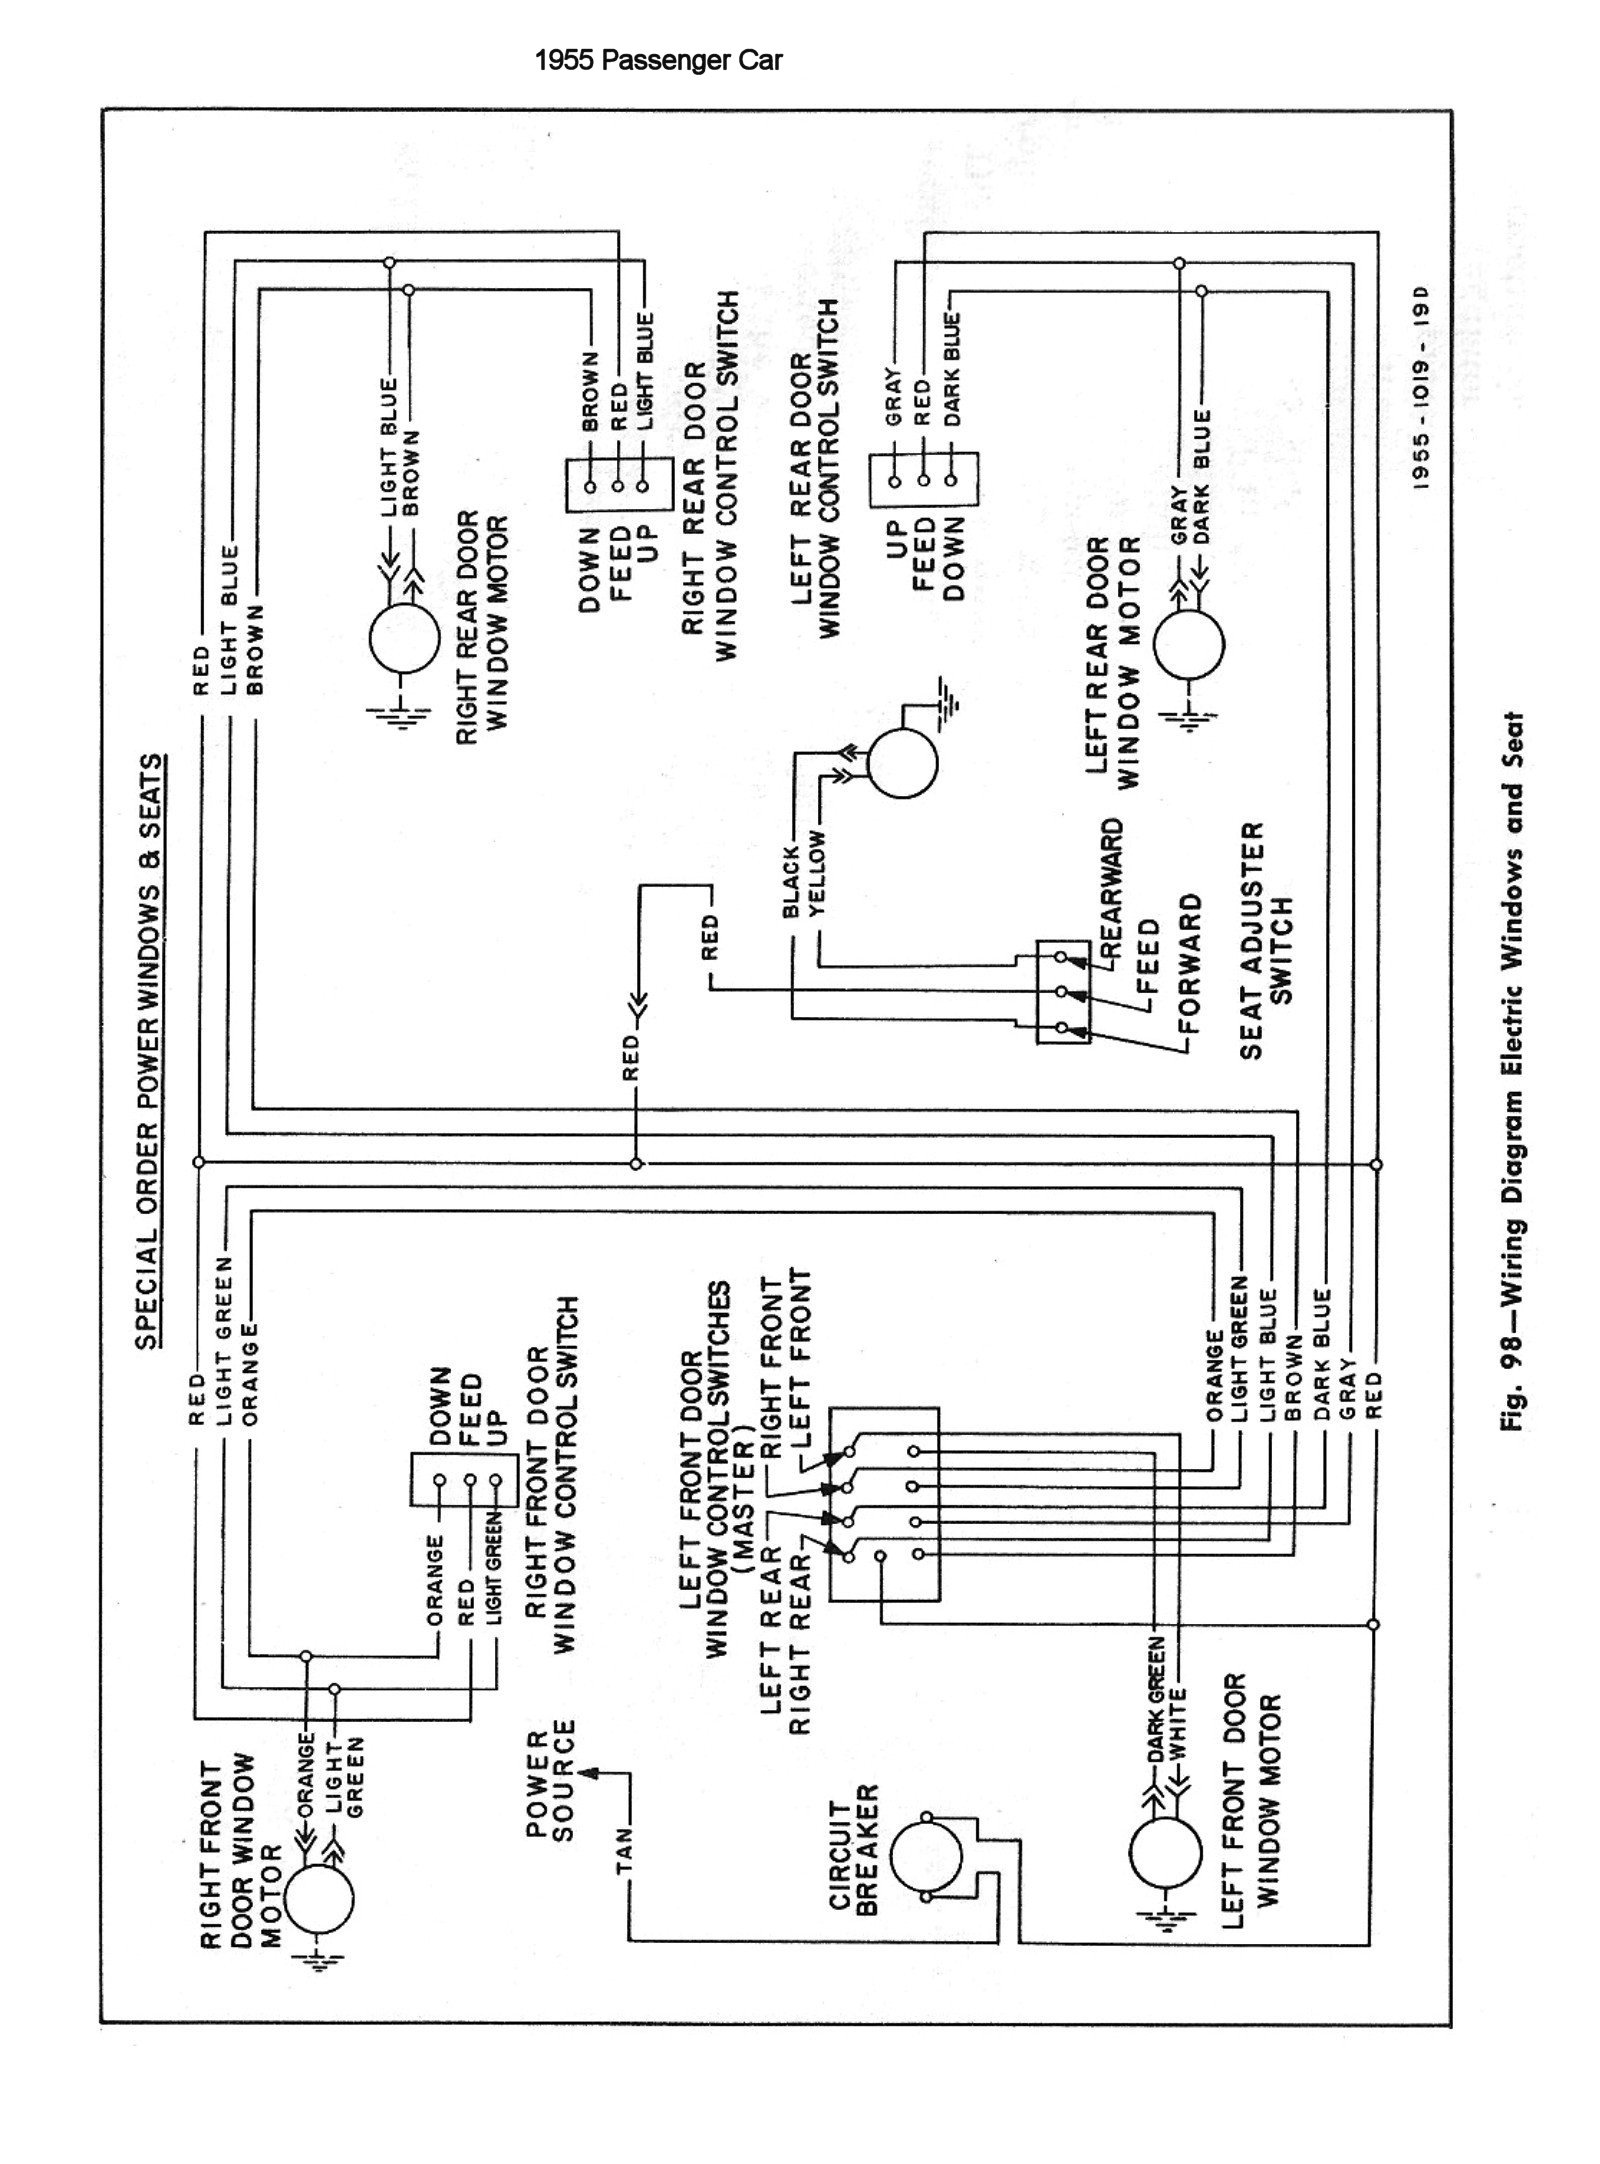 55csm0146 1982 chevrolet c10 wiring diagram 1982 c10 neutral safety switch 1950 chevy truck wiring diagram at honlapkeszites.co